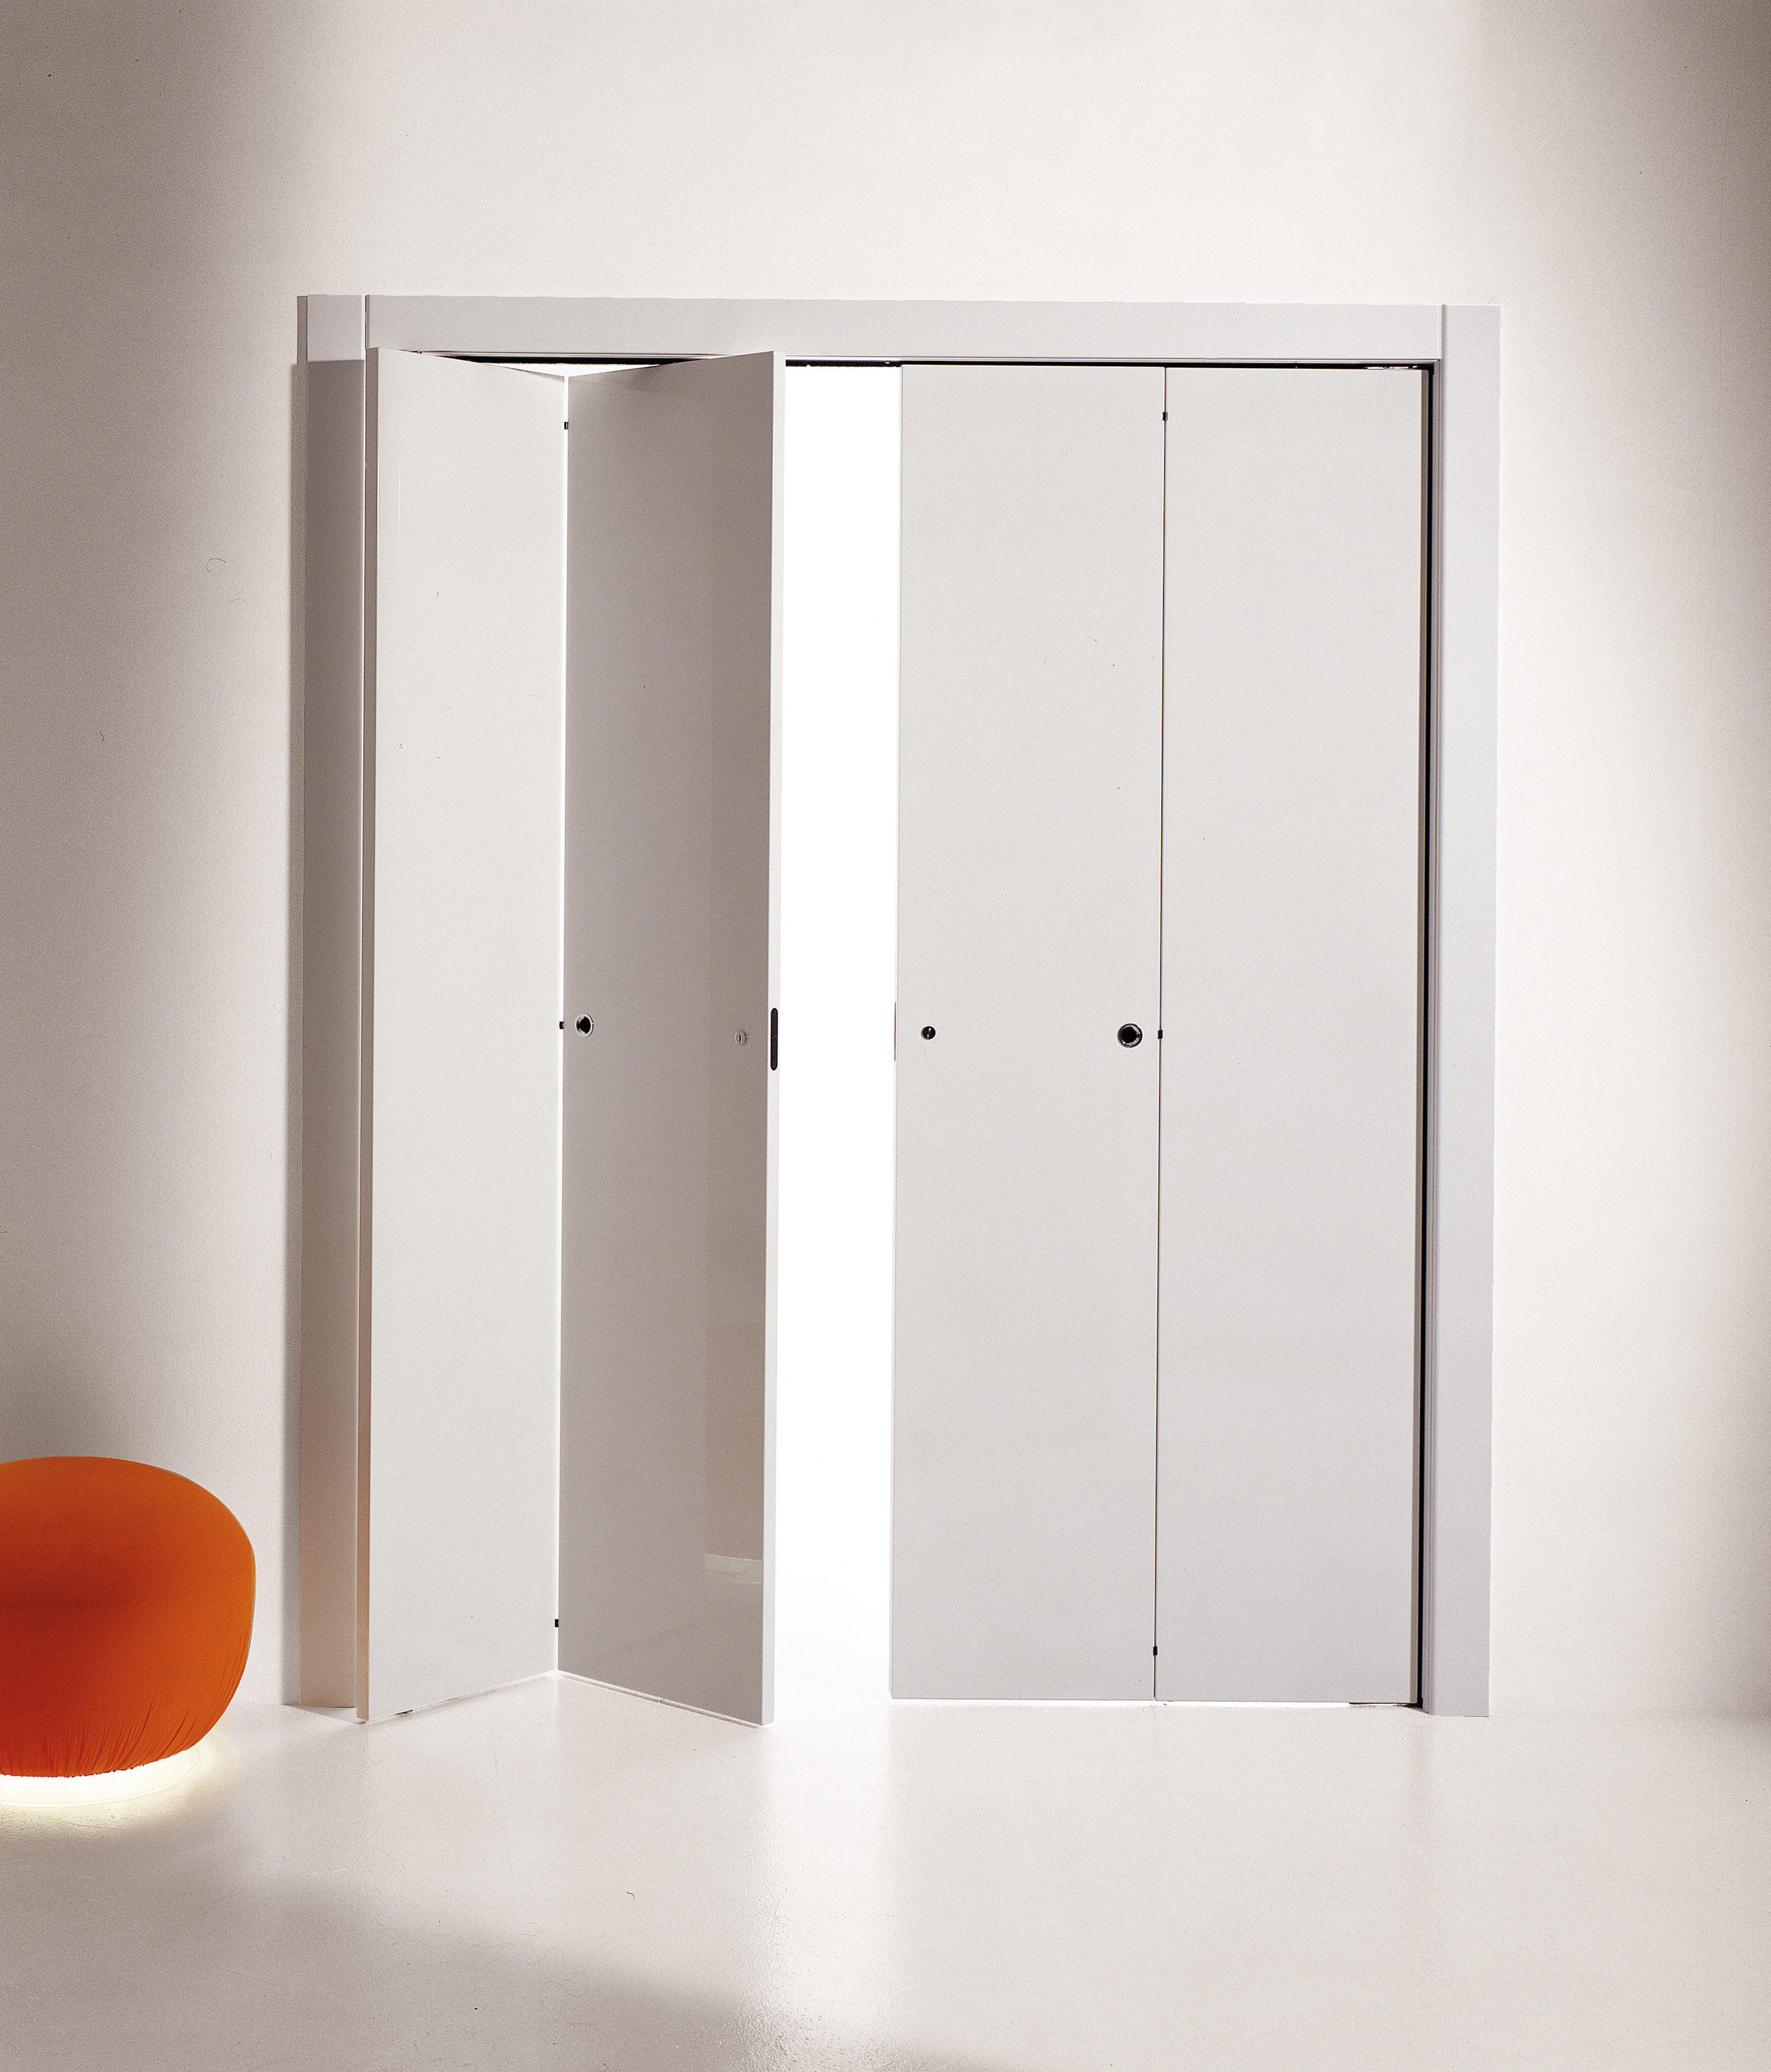 NIEDER2 - Internal doors from TRE-P & TRE-Più | Architonic